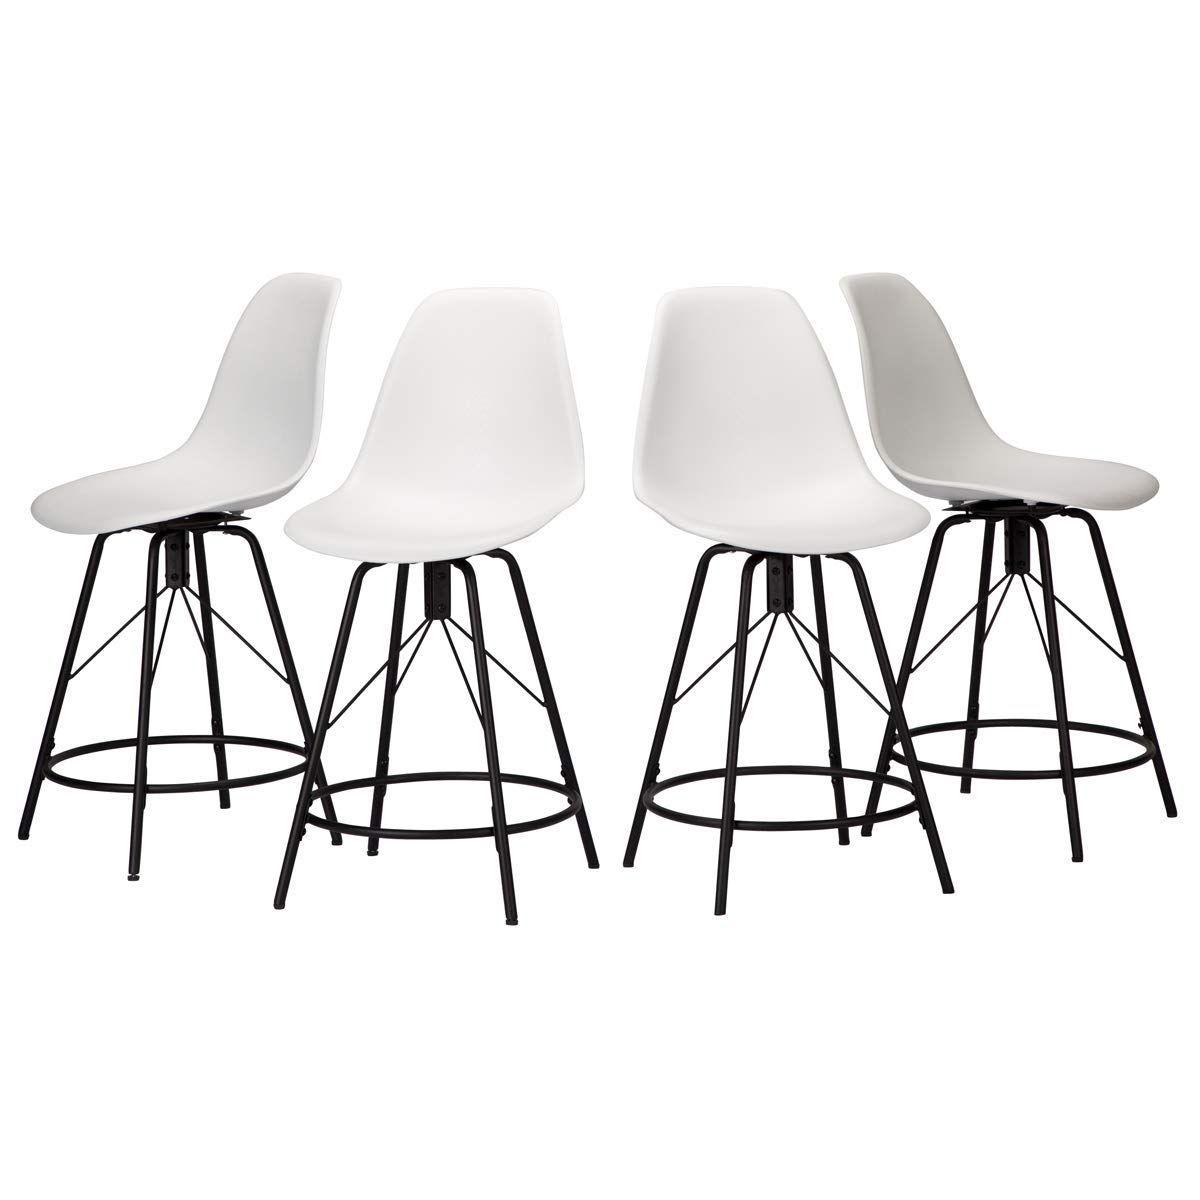 Haobo Metal Bar Stools, Counter Height Stools Plastic Seat Swivel Chairs Set of 4 for Indoor, Outdoor, Home, Kitchen Dinning Chairs, Bar Counter, Business 24 , 06 Swivel White